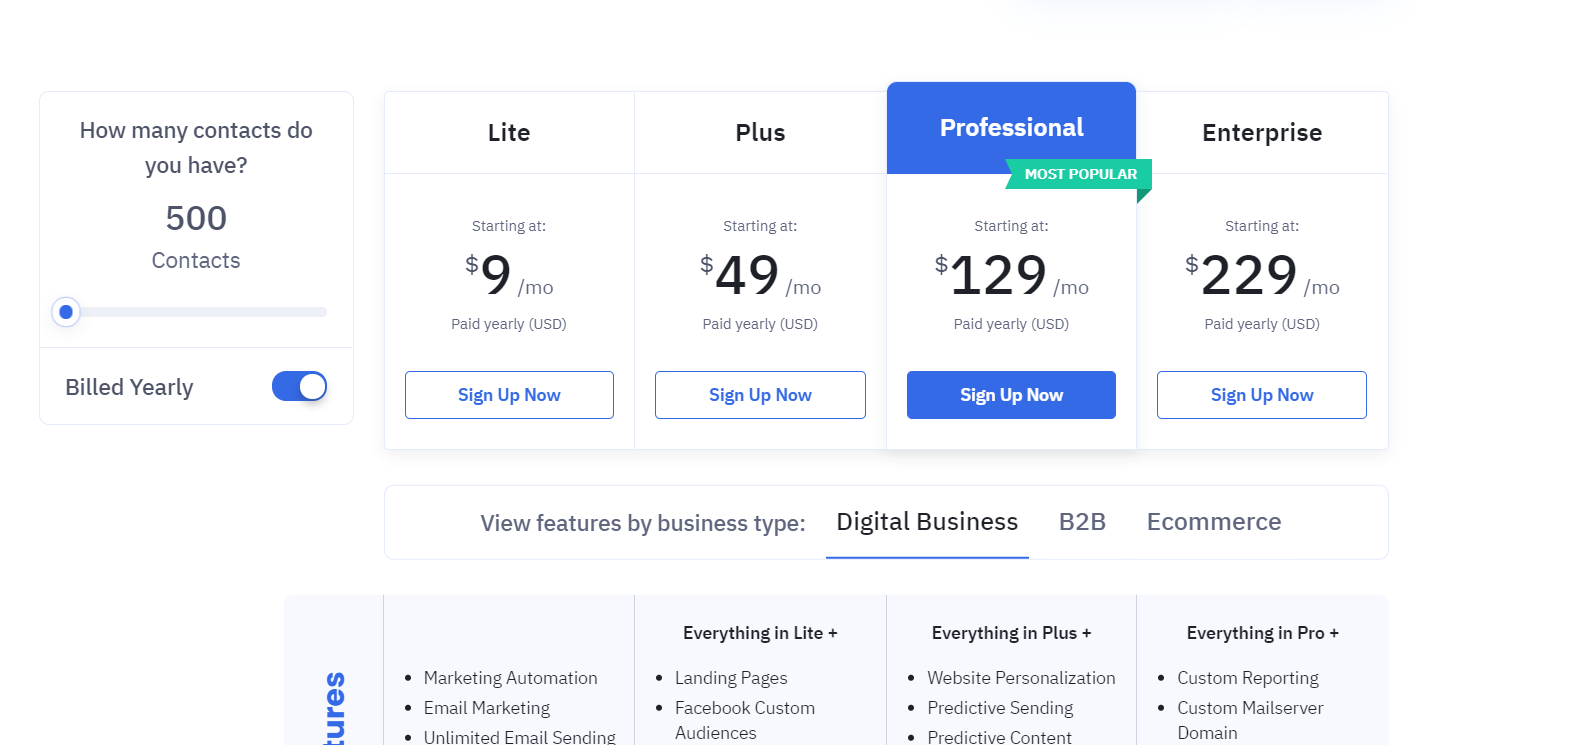 AtiveCampaign pricing page design: how to recommend a plan?